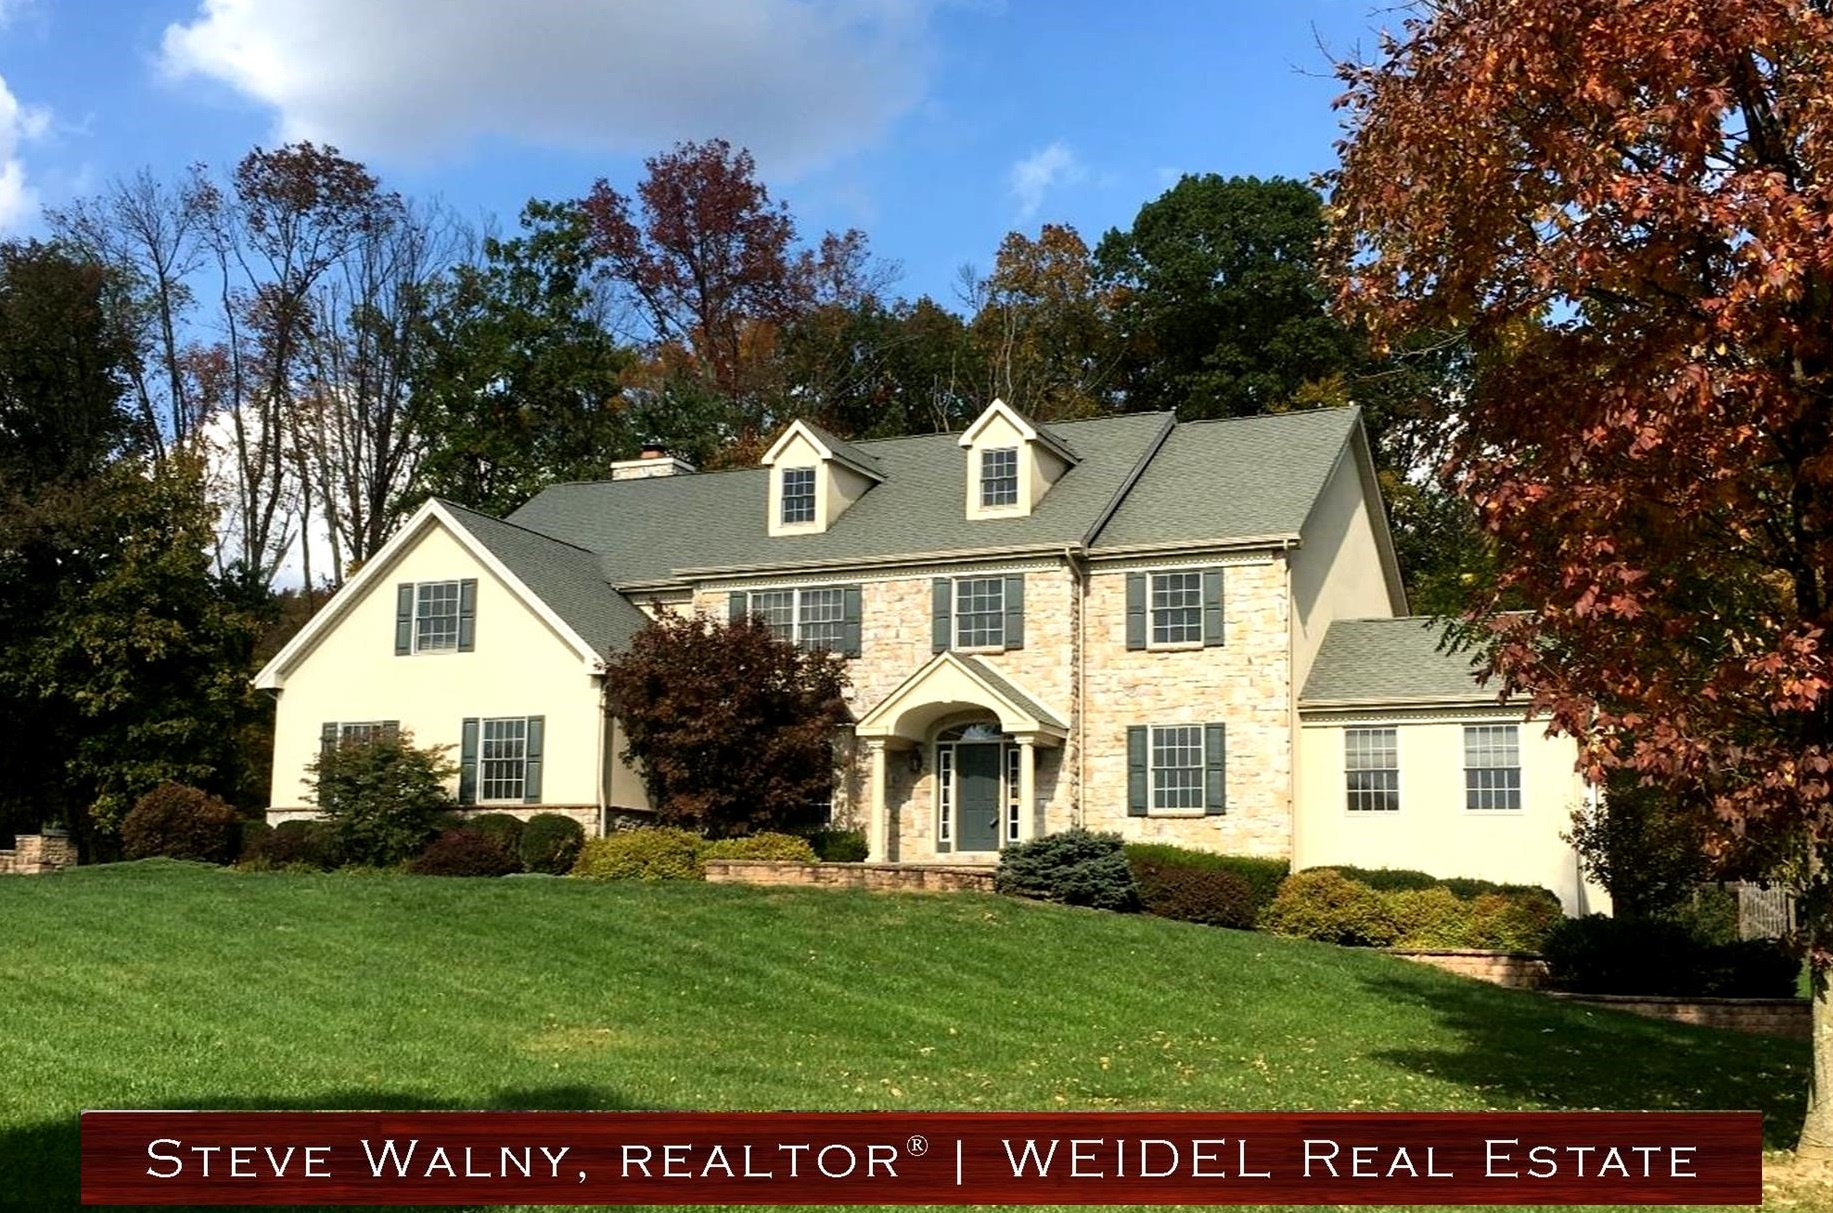 Homes of Doylestown | www.HomesOfDoylestown.com | Doylestown Realtor | Steve Walny | Doylestown Realtors